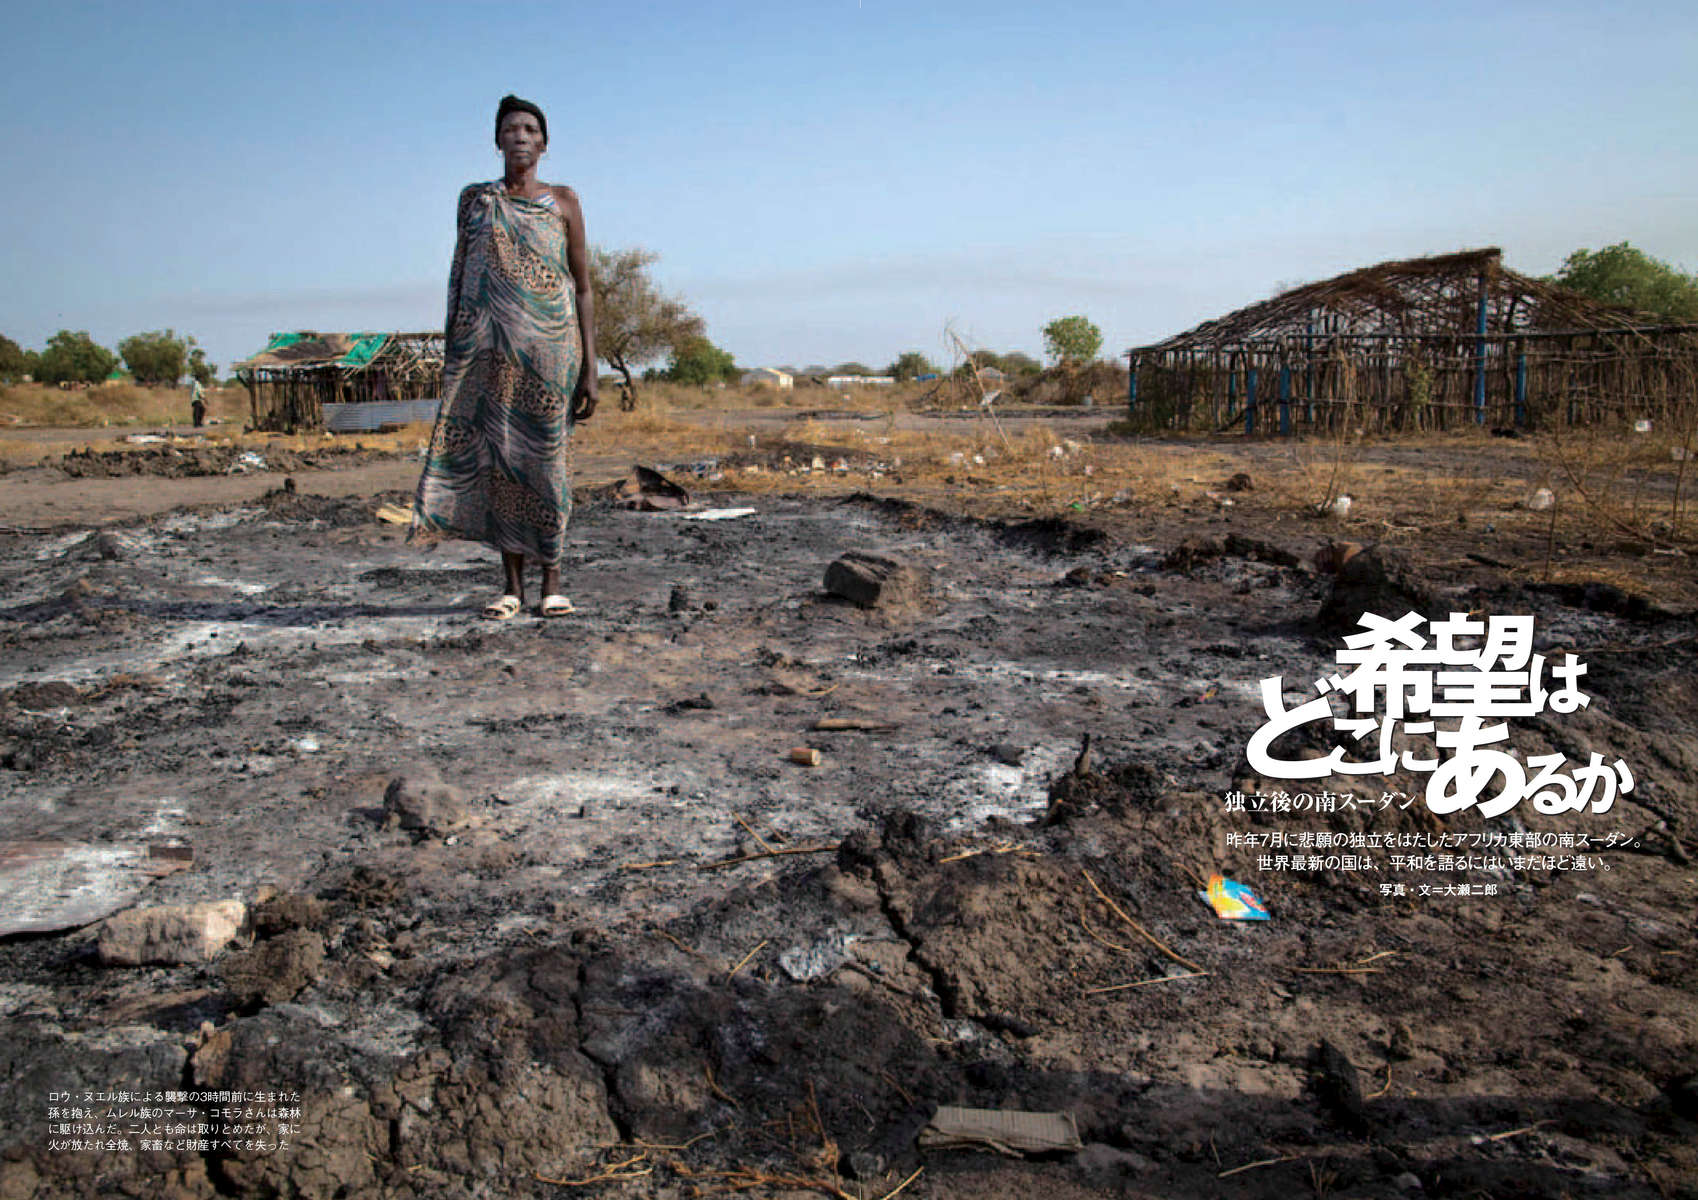 Asahi Weekly (Japan) - South Sudan Conflict